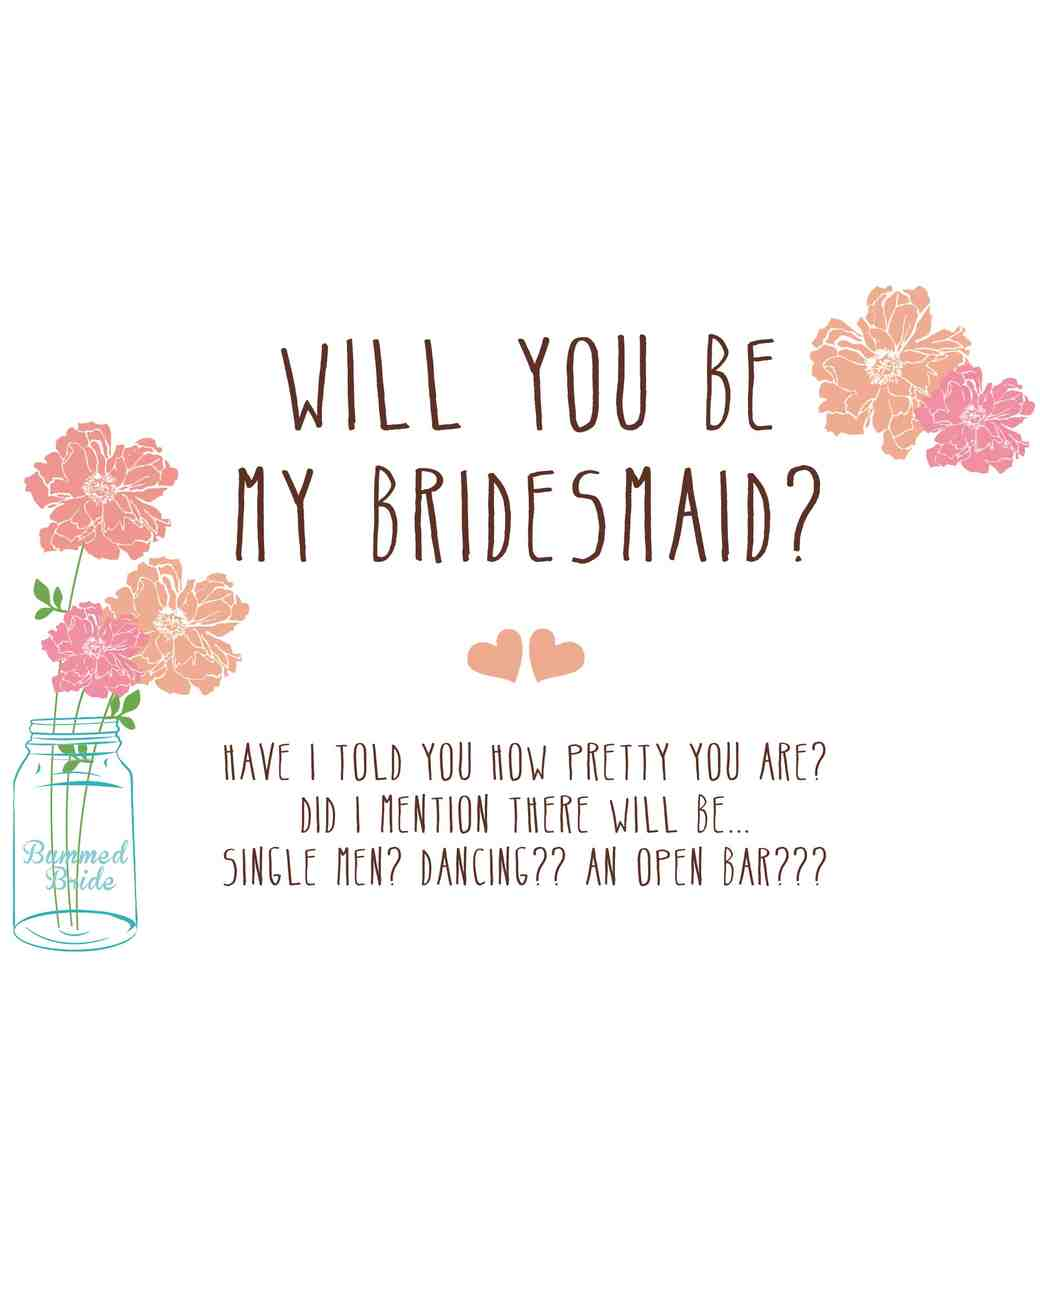 bummed-bride-will-you-be-my-bridesmaid-card-0216.jpg